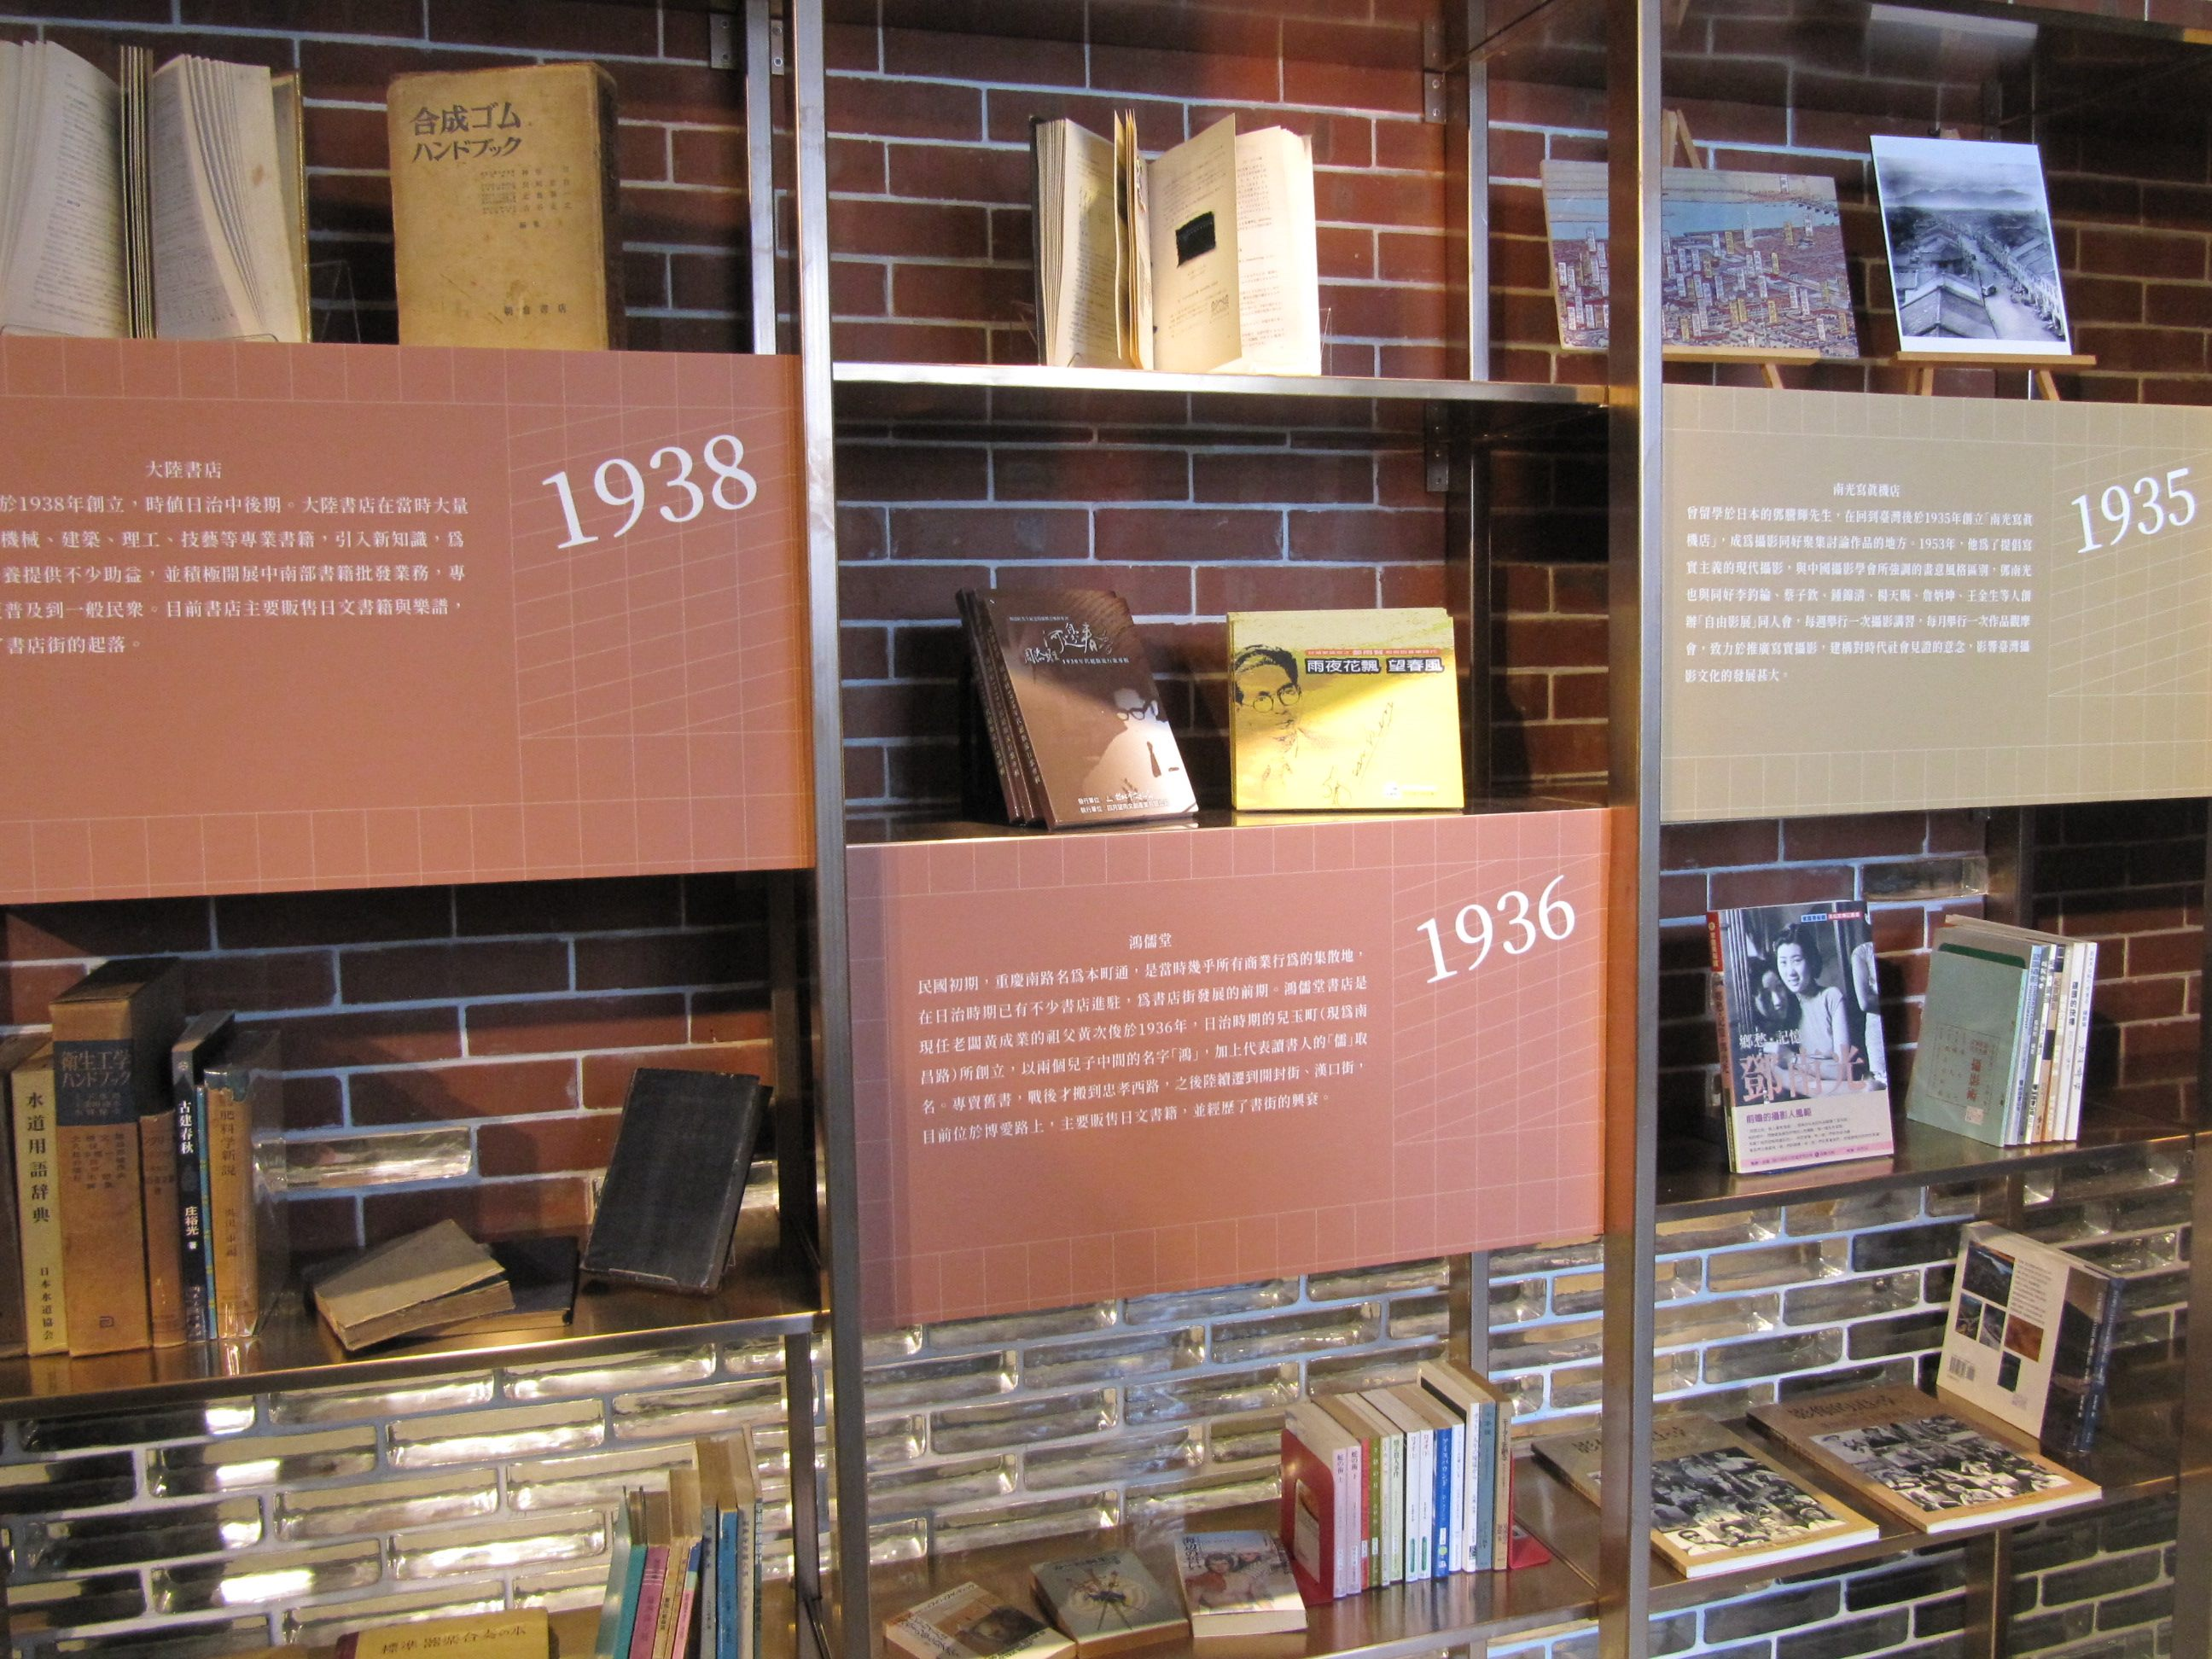 A selection of cultural and historical books on the first floor of the Mitsui Warehouse.